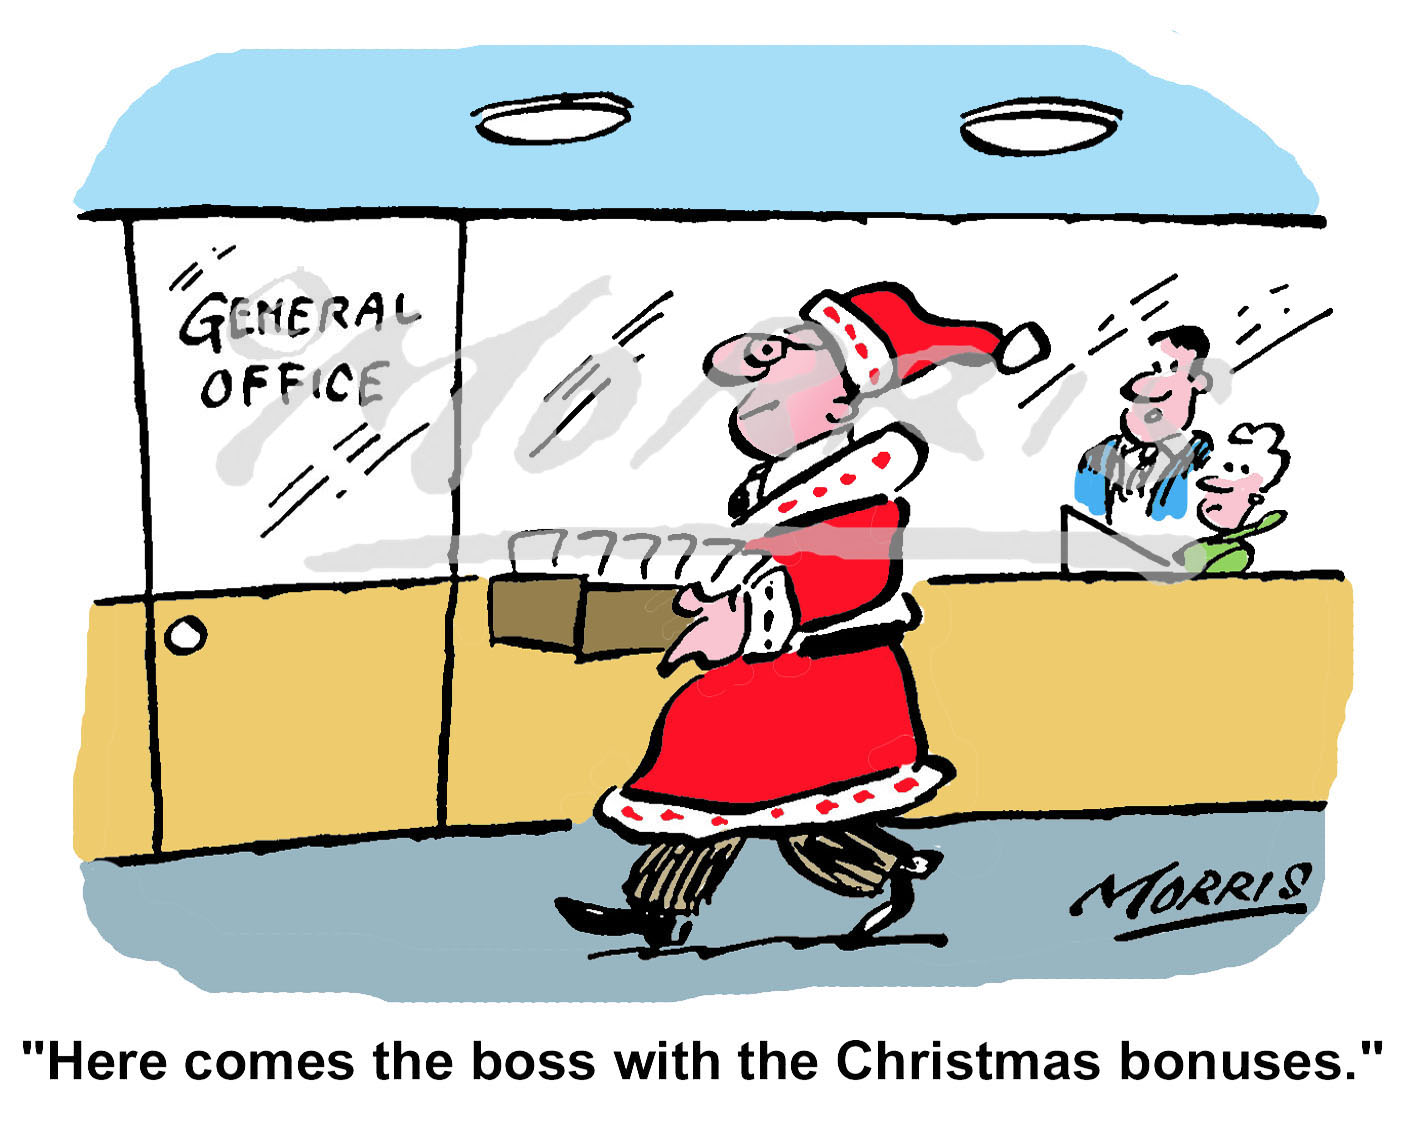 Office Manager Christmas bonus cartoon Ref: 0963col